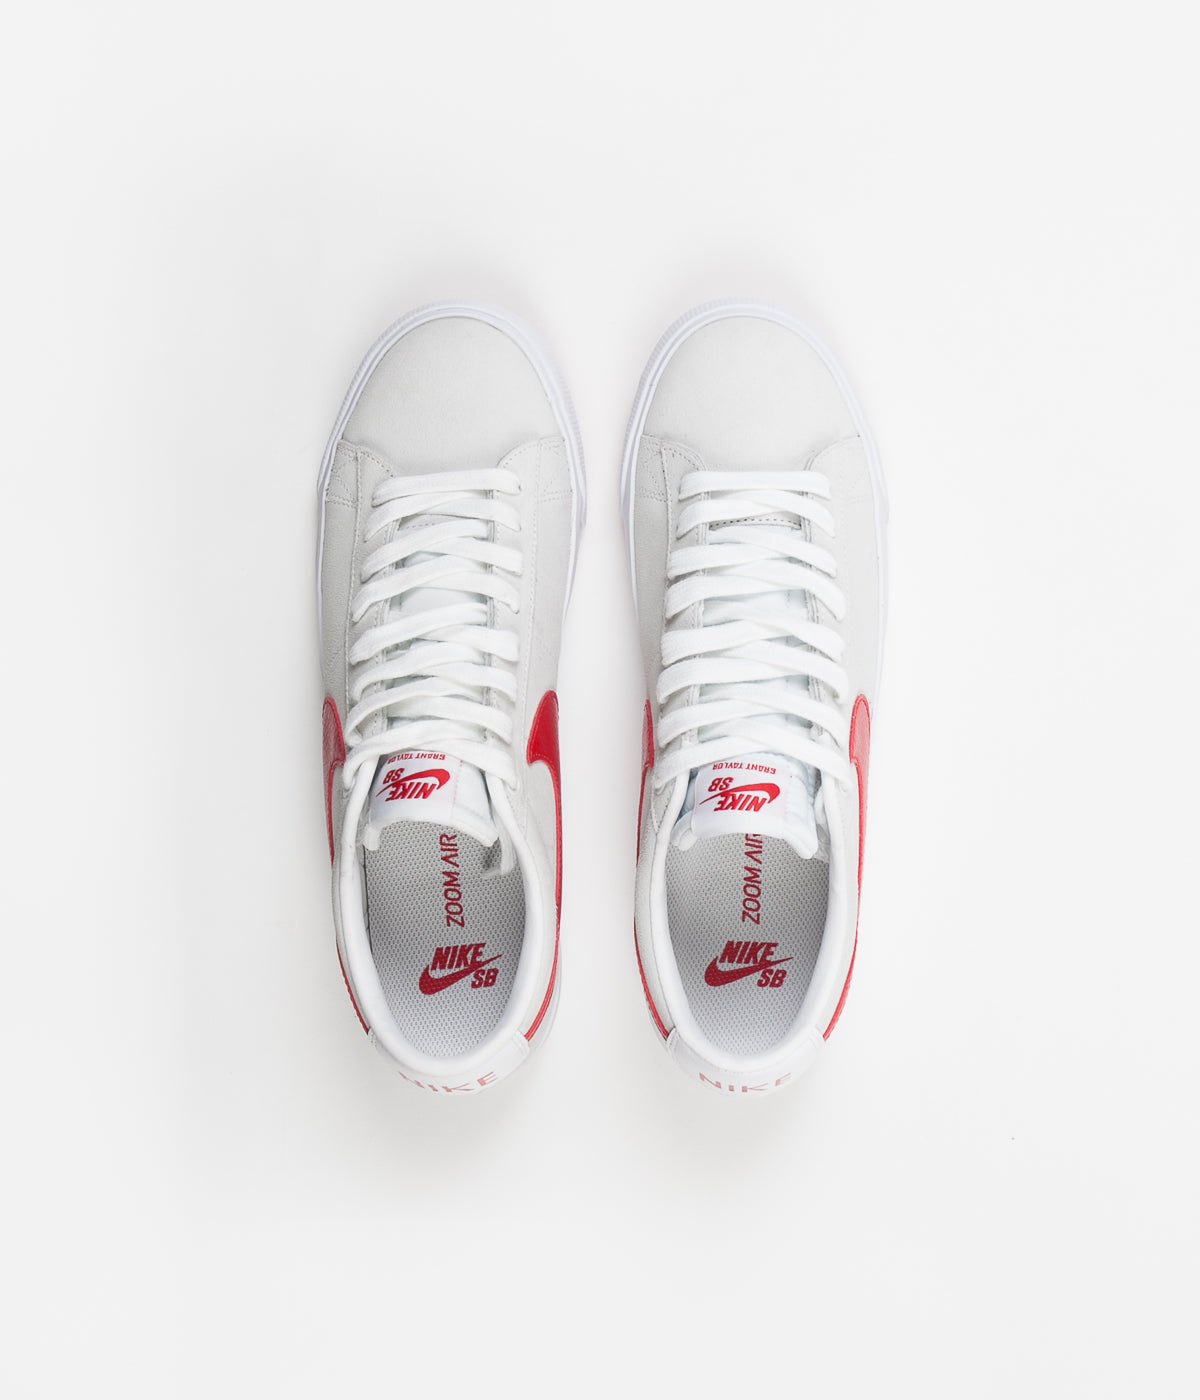 promo code 0803a d7ce3 Nike SB Blazer Low GT Shoes - White   University Red ...